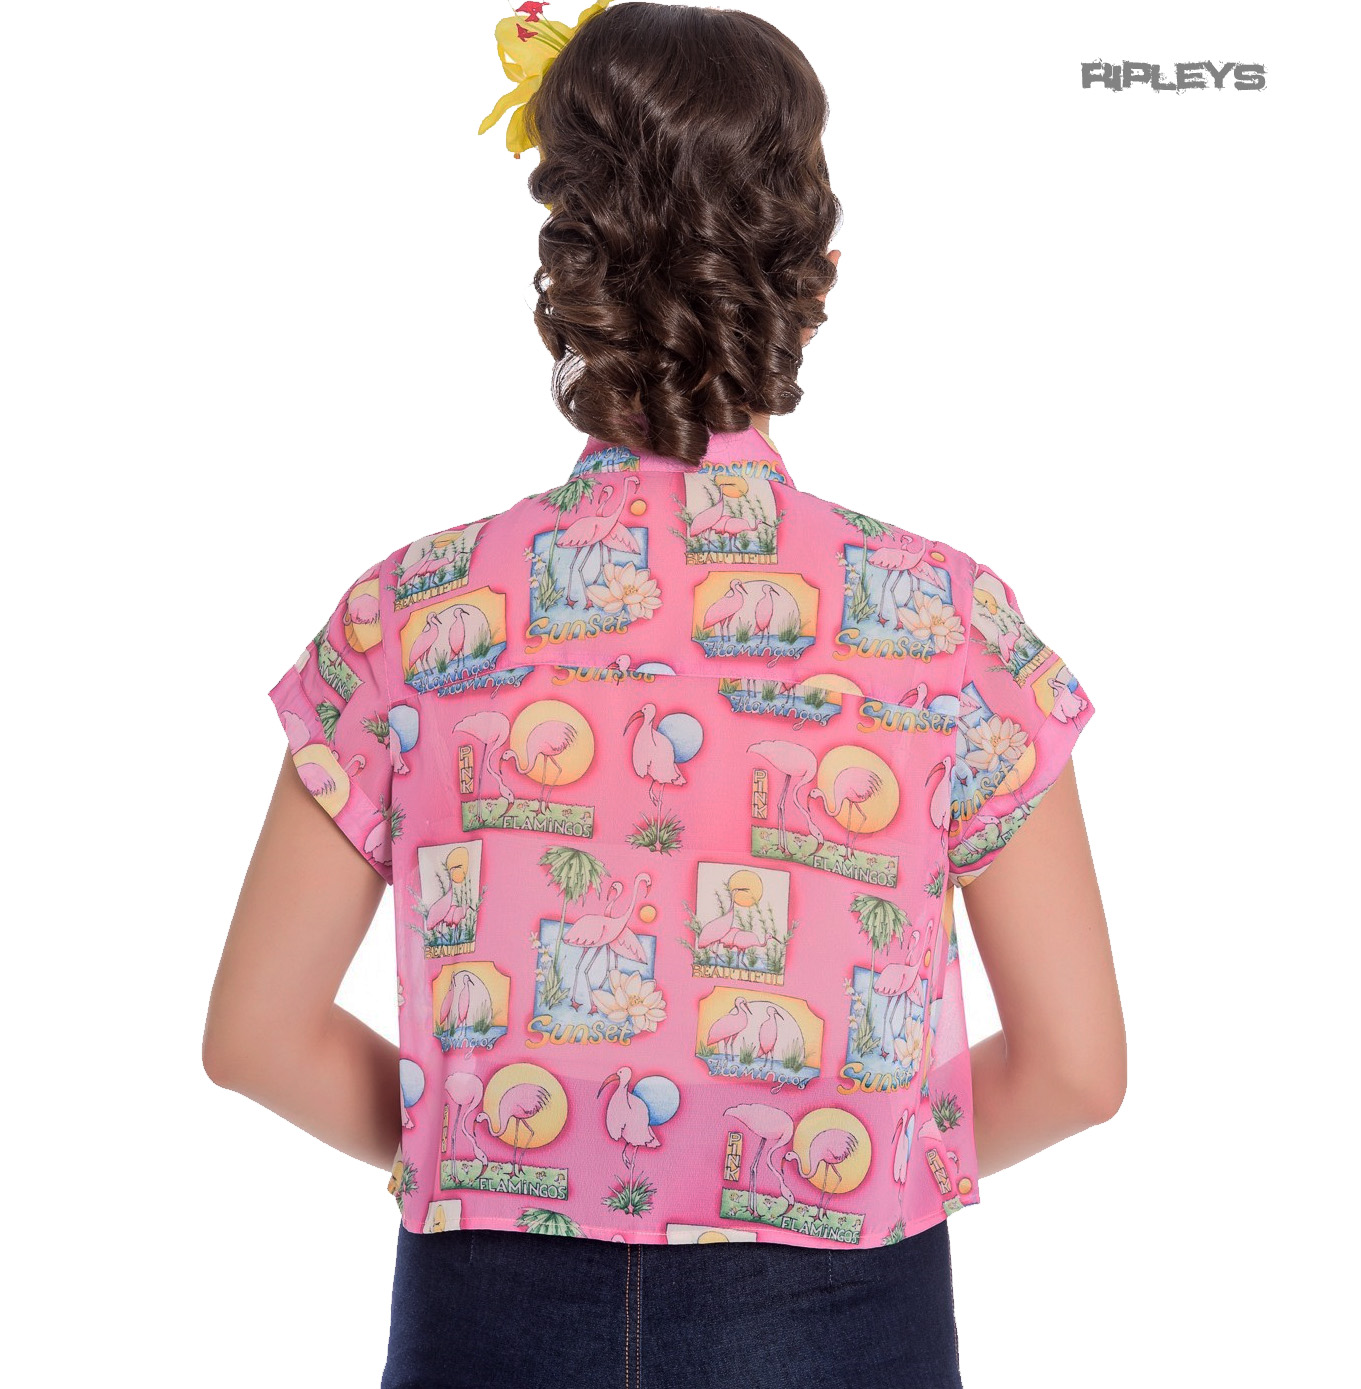 thumbnail 11 - Hell Bunny 50s Retro Top Pink Flamingo MAXINE Cropped Blouse Shirt All Sizes